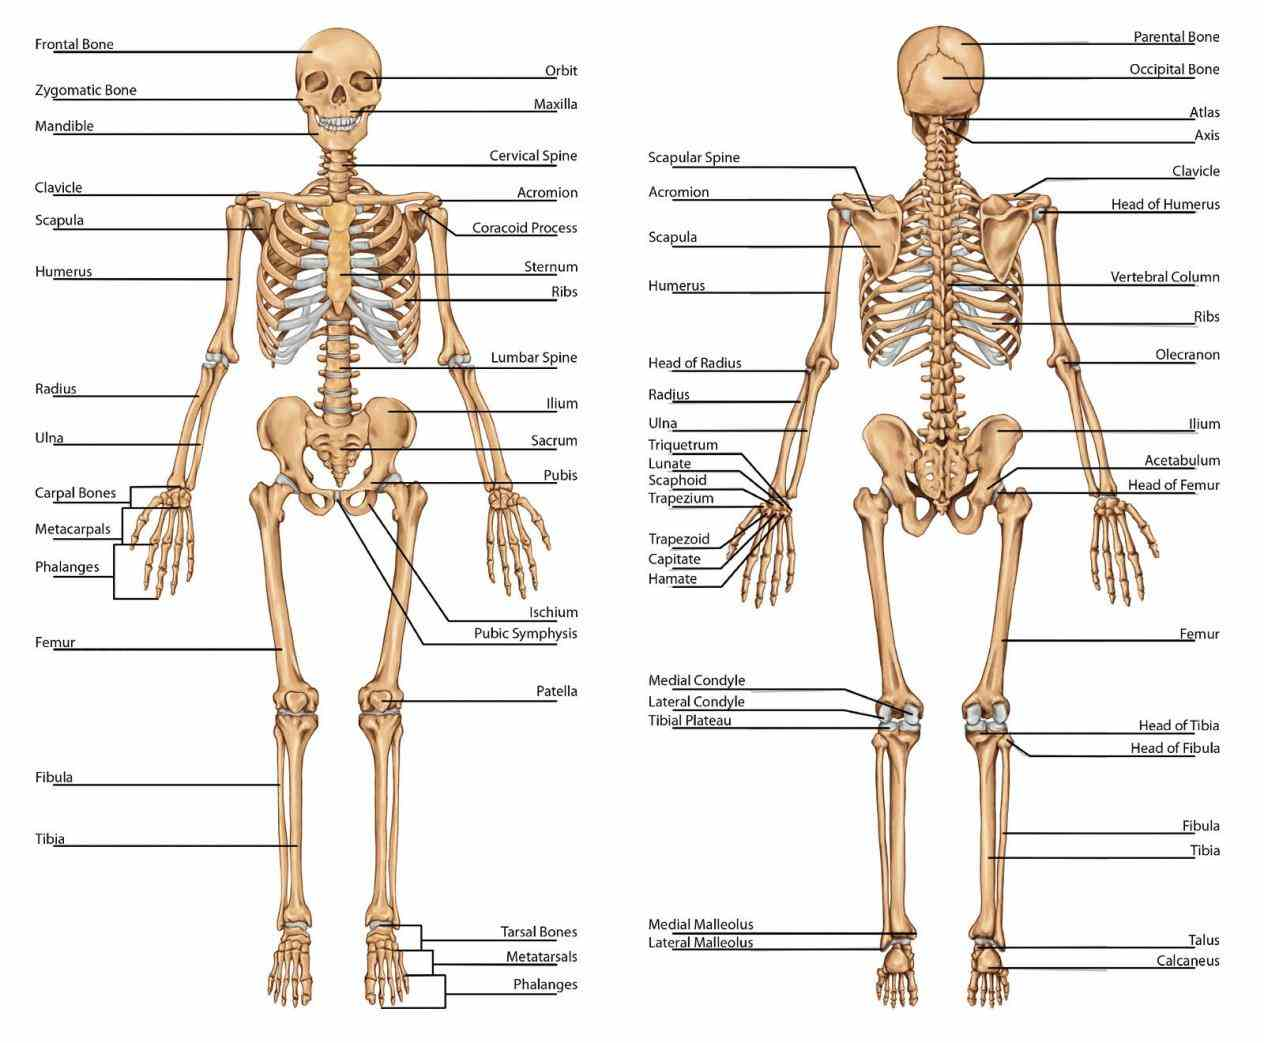 various regions of human body through draganddrop exercises anatomy Major Regions Of The Body Anatomy • is the study